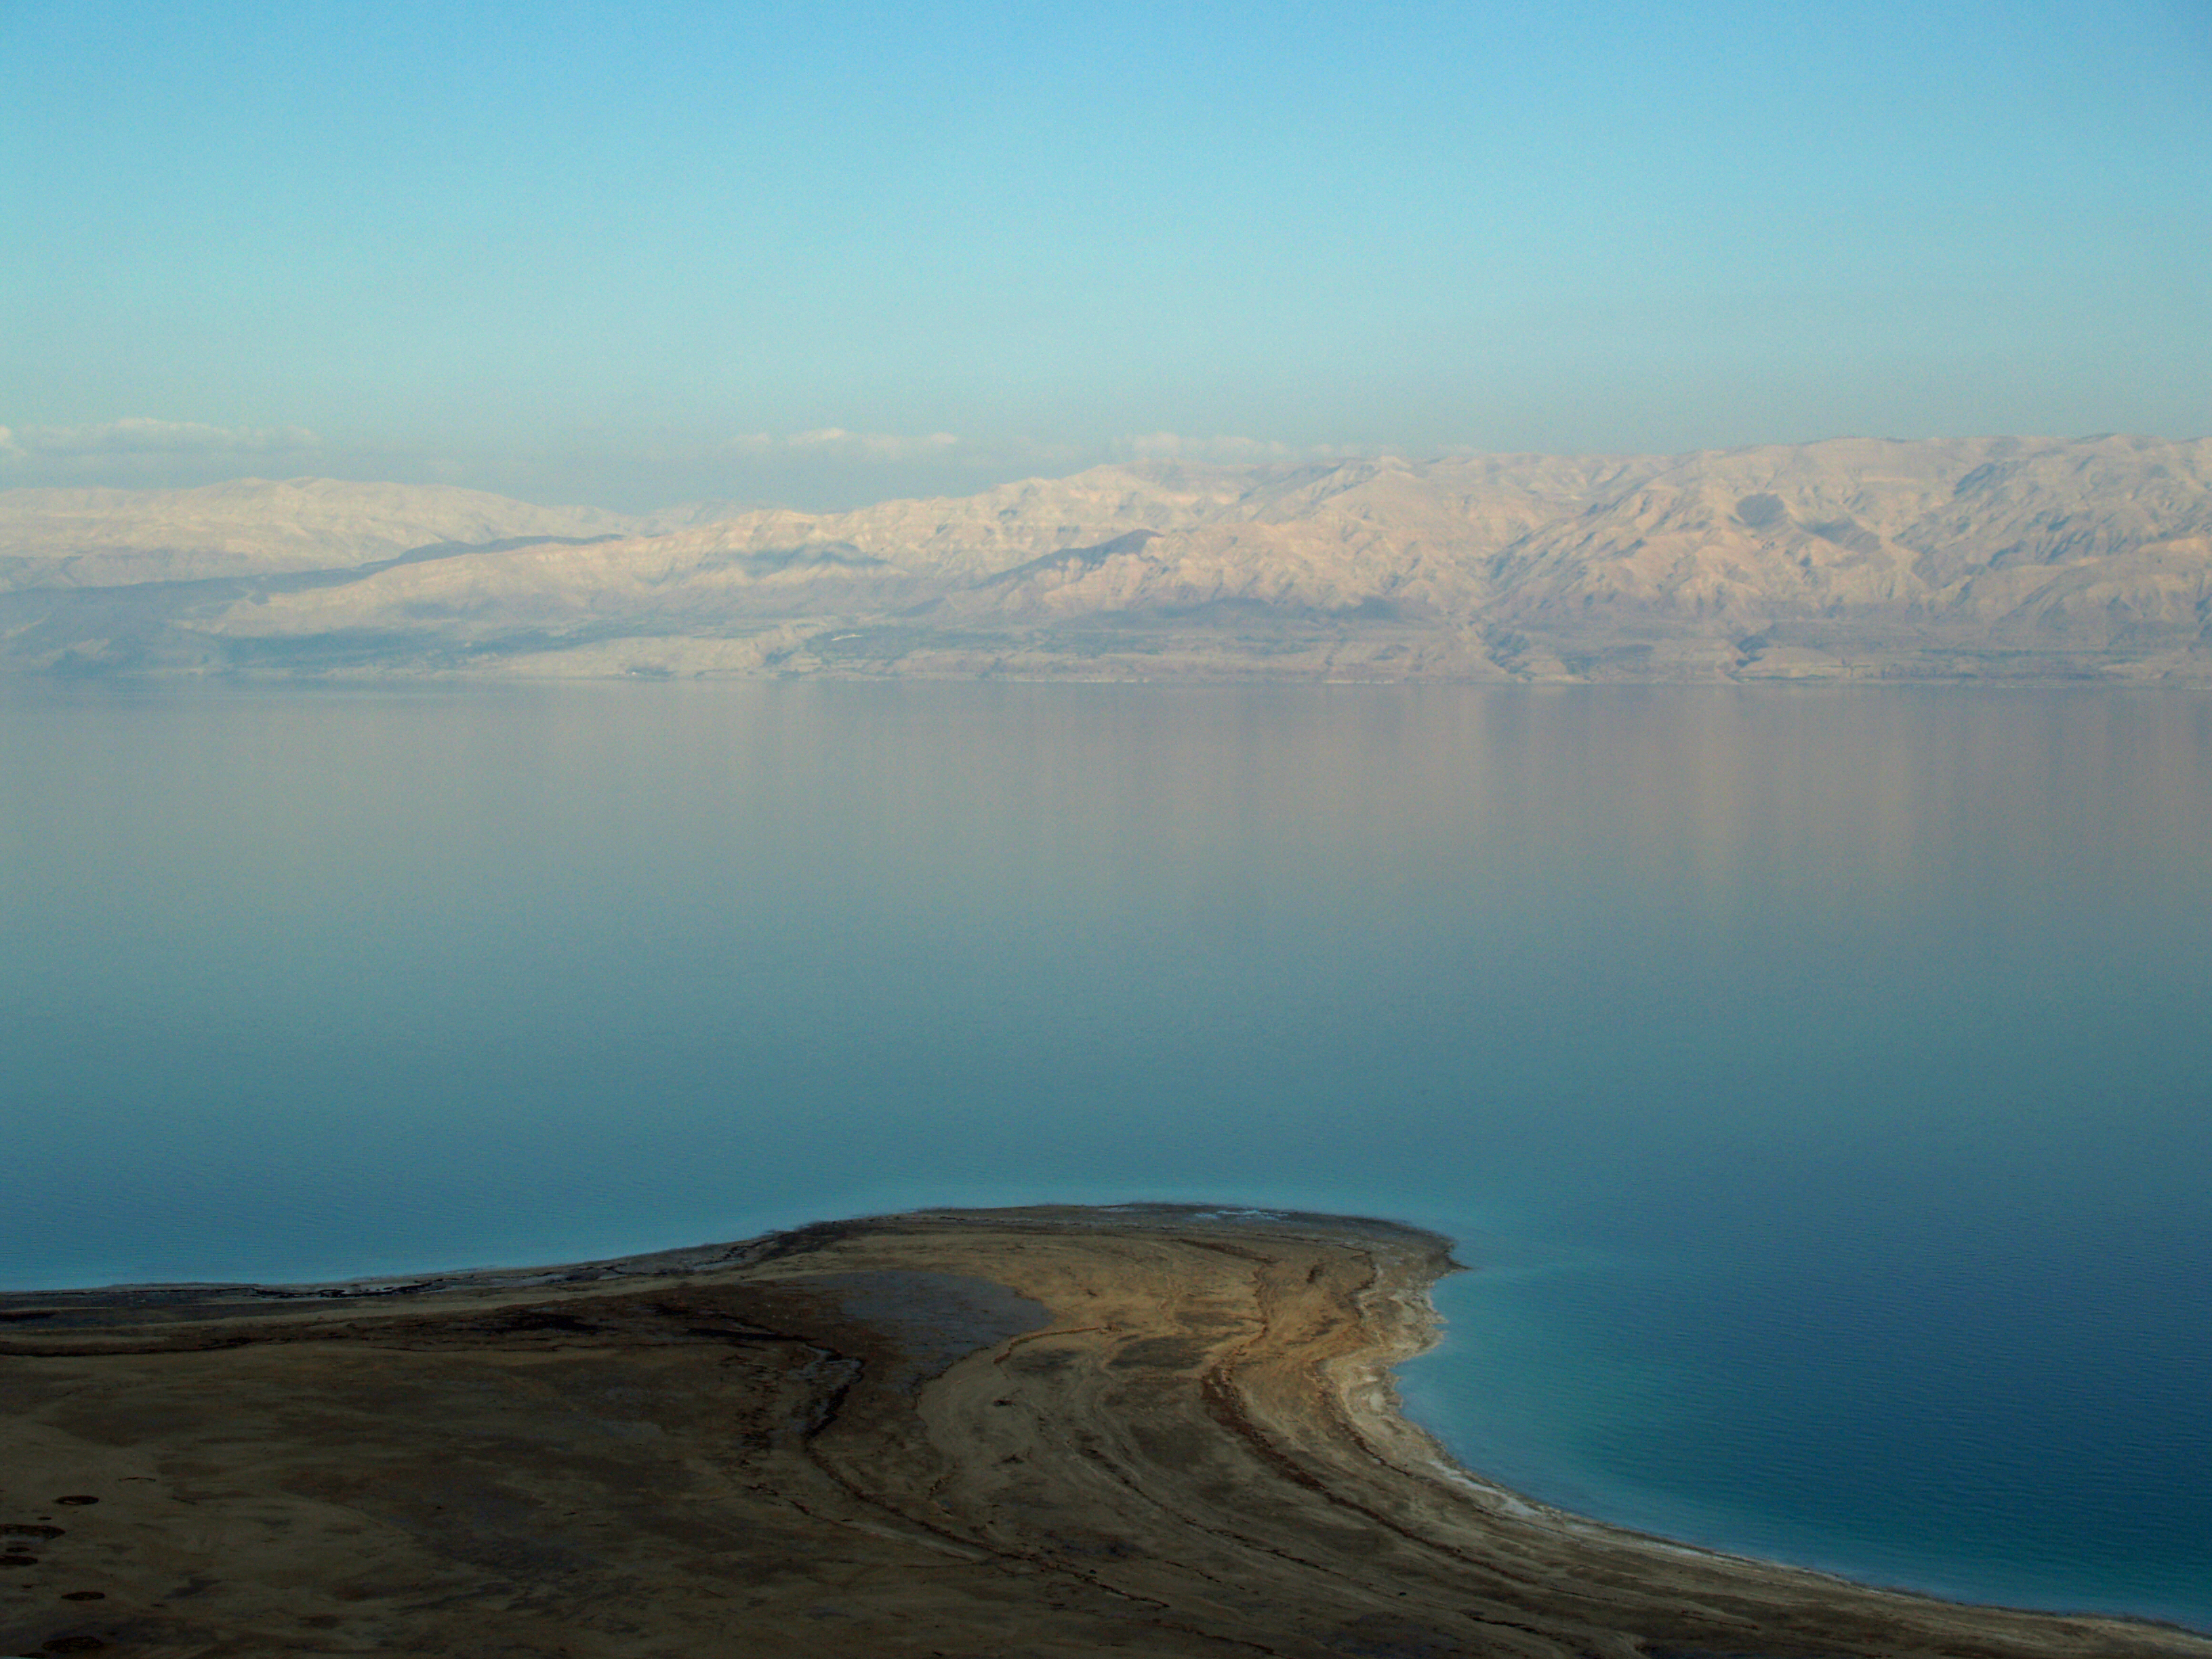 http://upload.wikimedia.org/wikipedia/commons/2/21/Dead_Sea_by_David_Shankbone.jpg